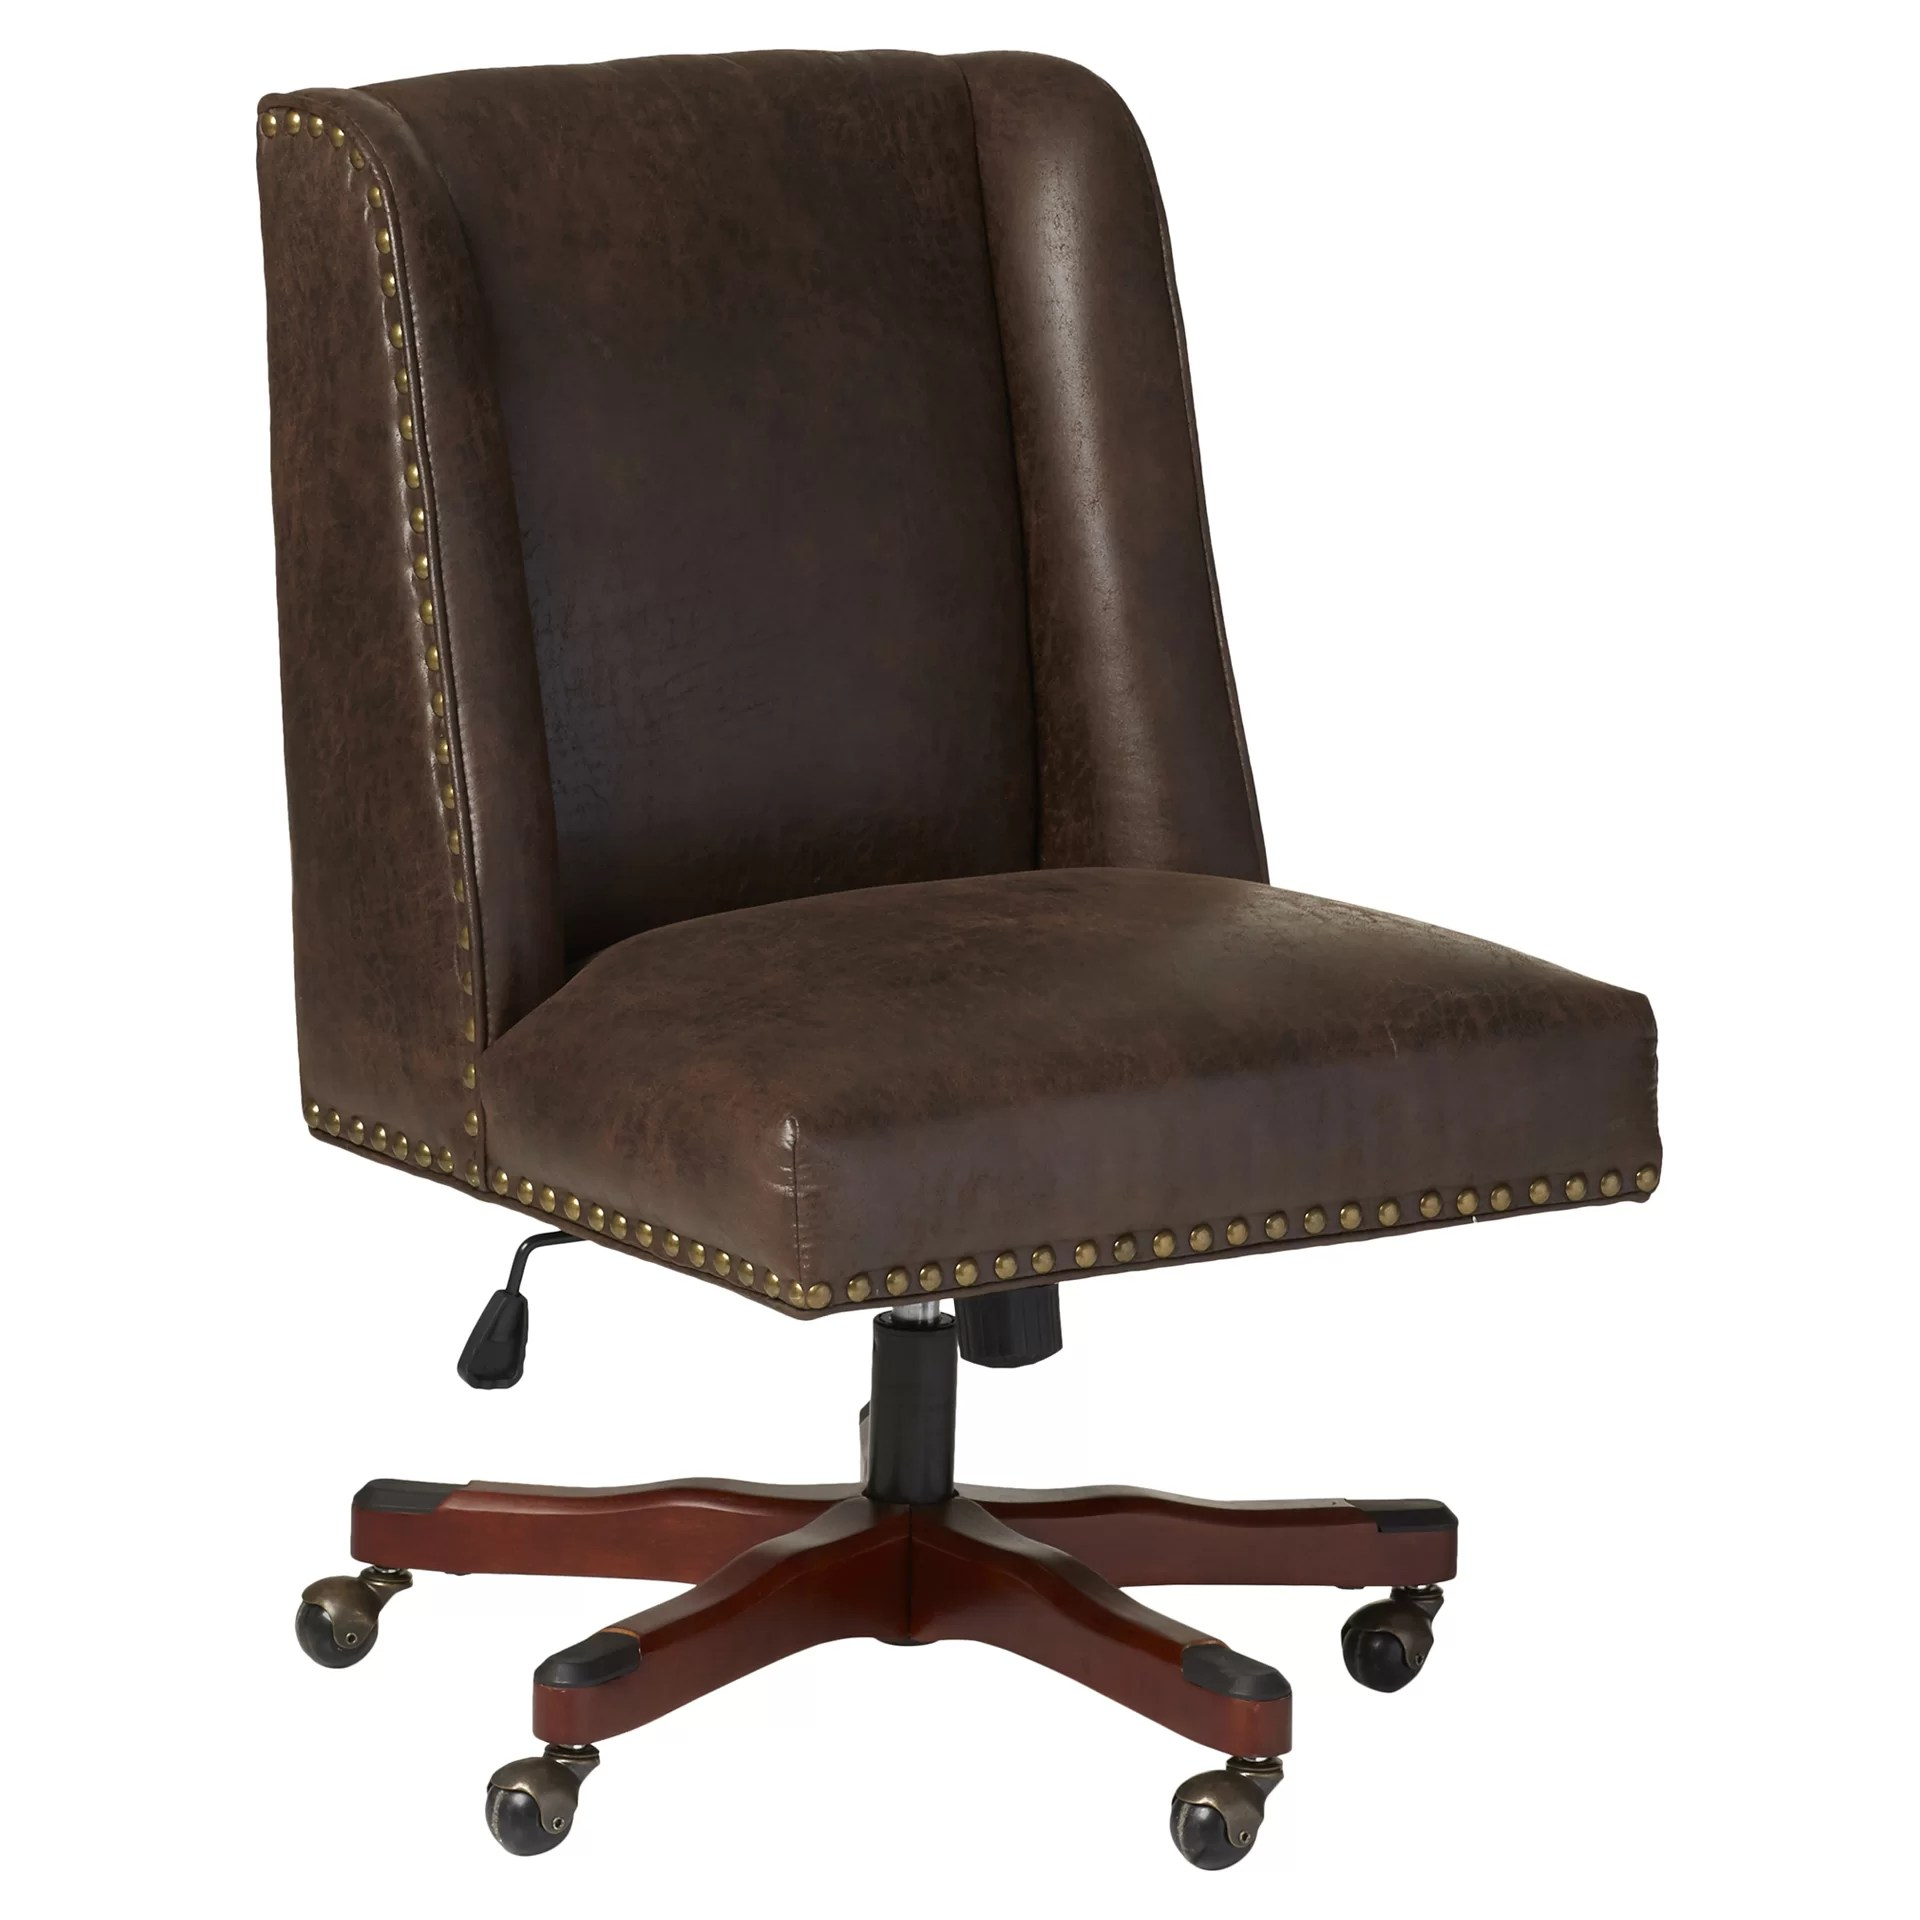 desk chair ideas camping chairs that fold up small three posts brennan reviews wayfair